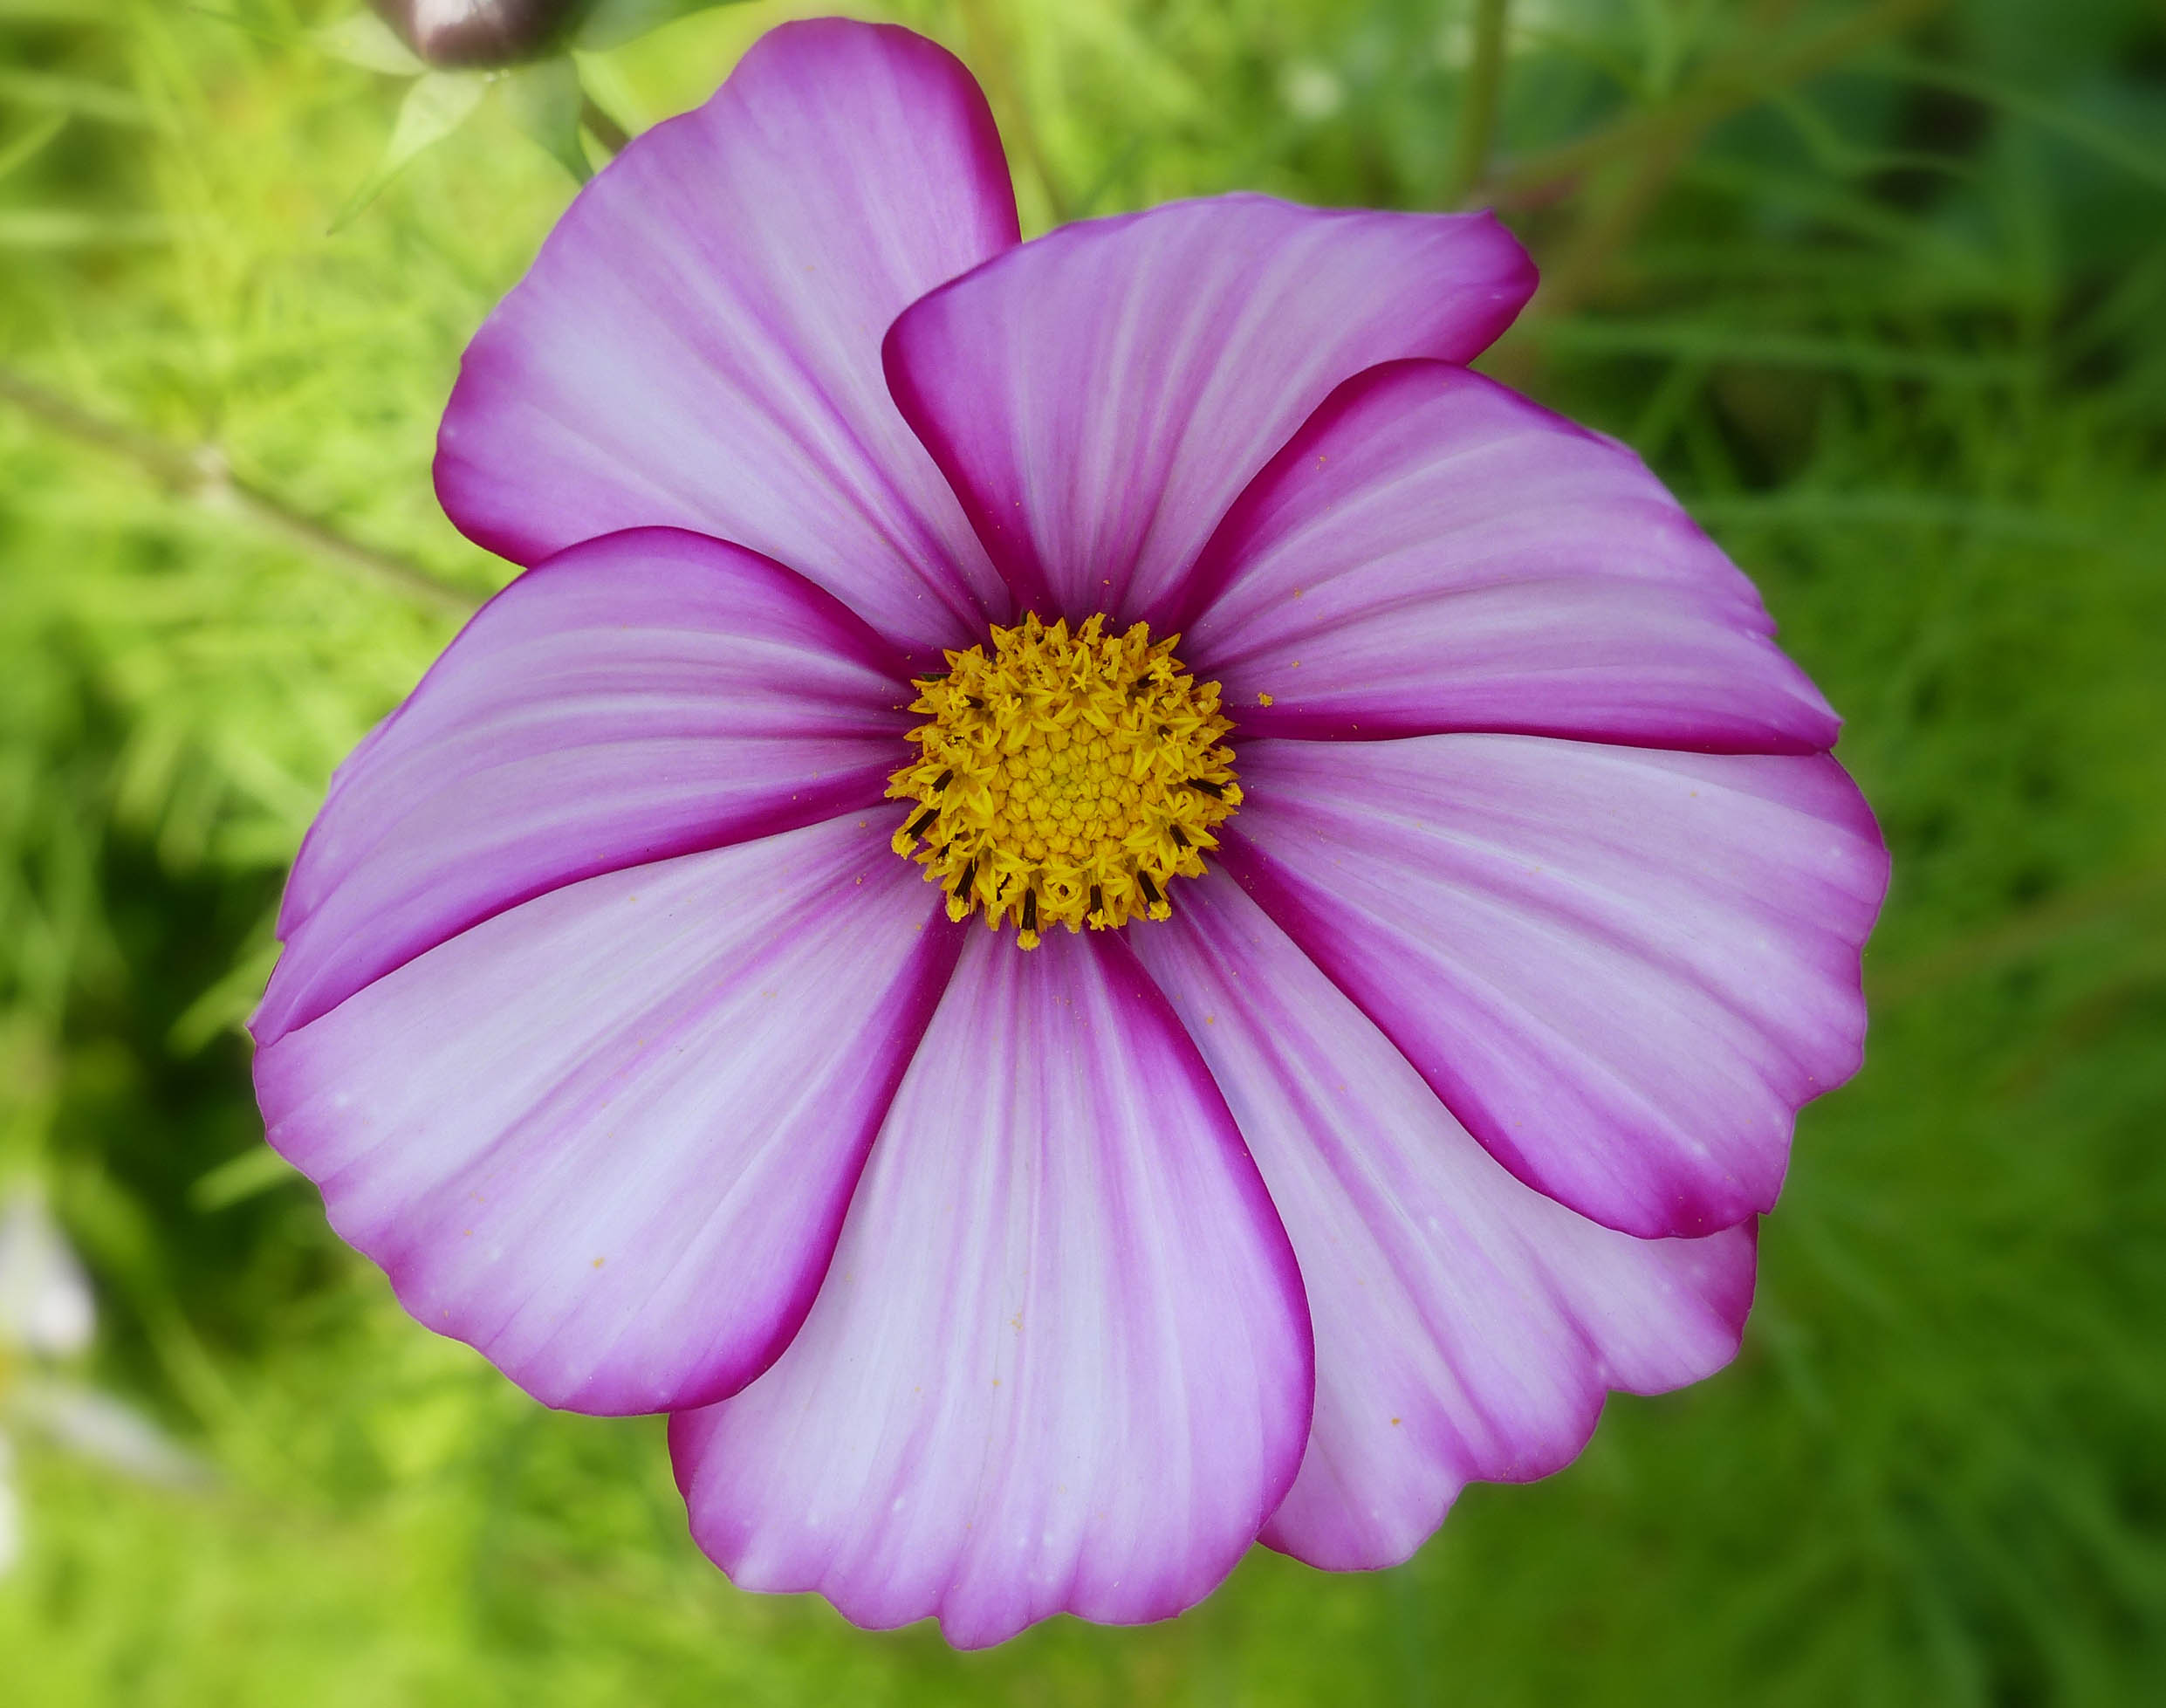 Purple flower with yellow centre